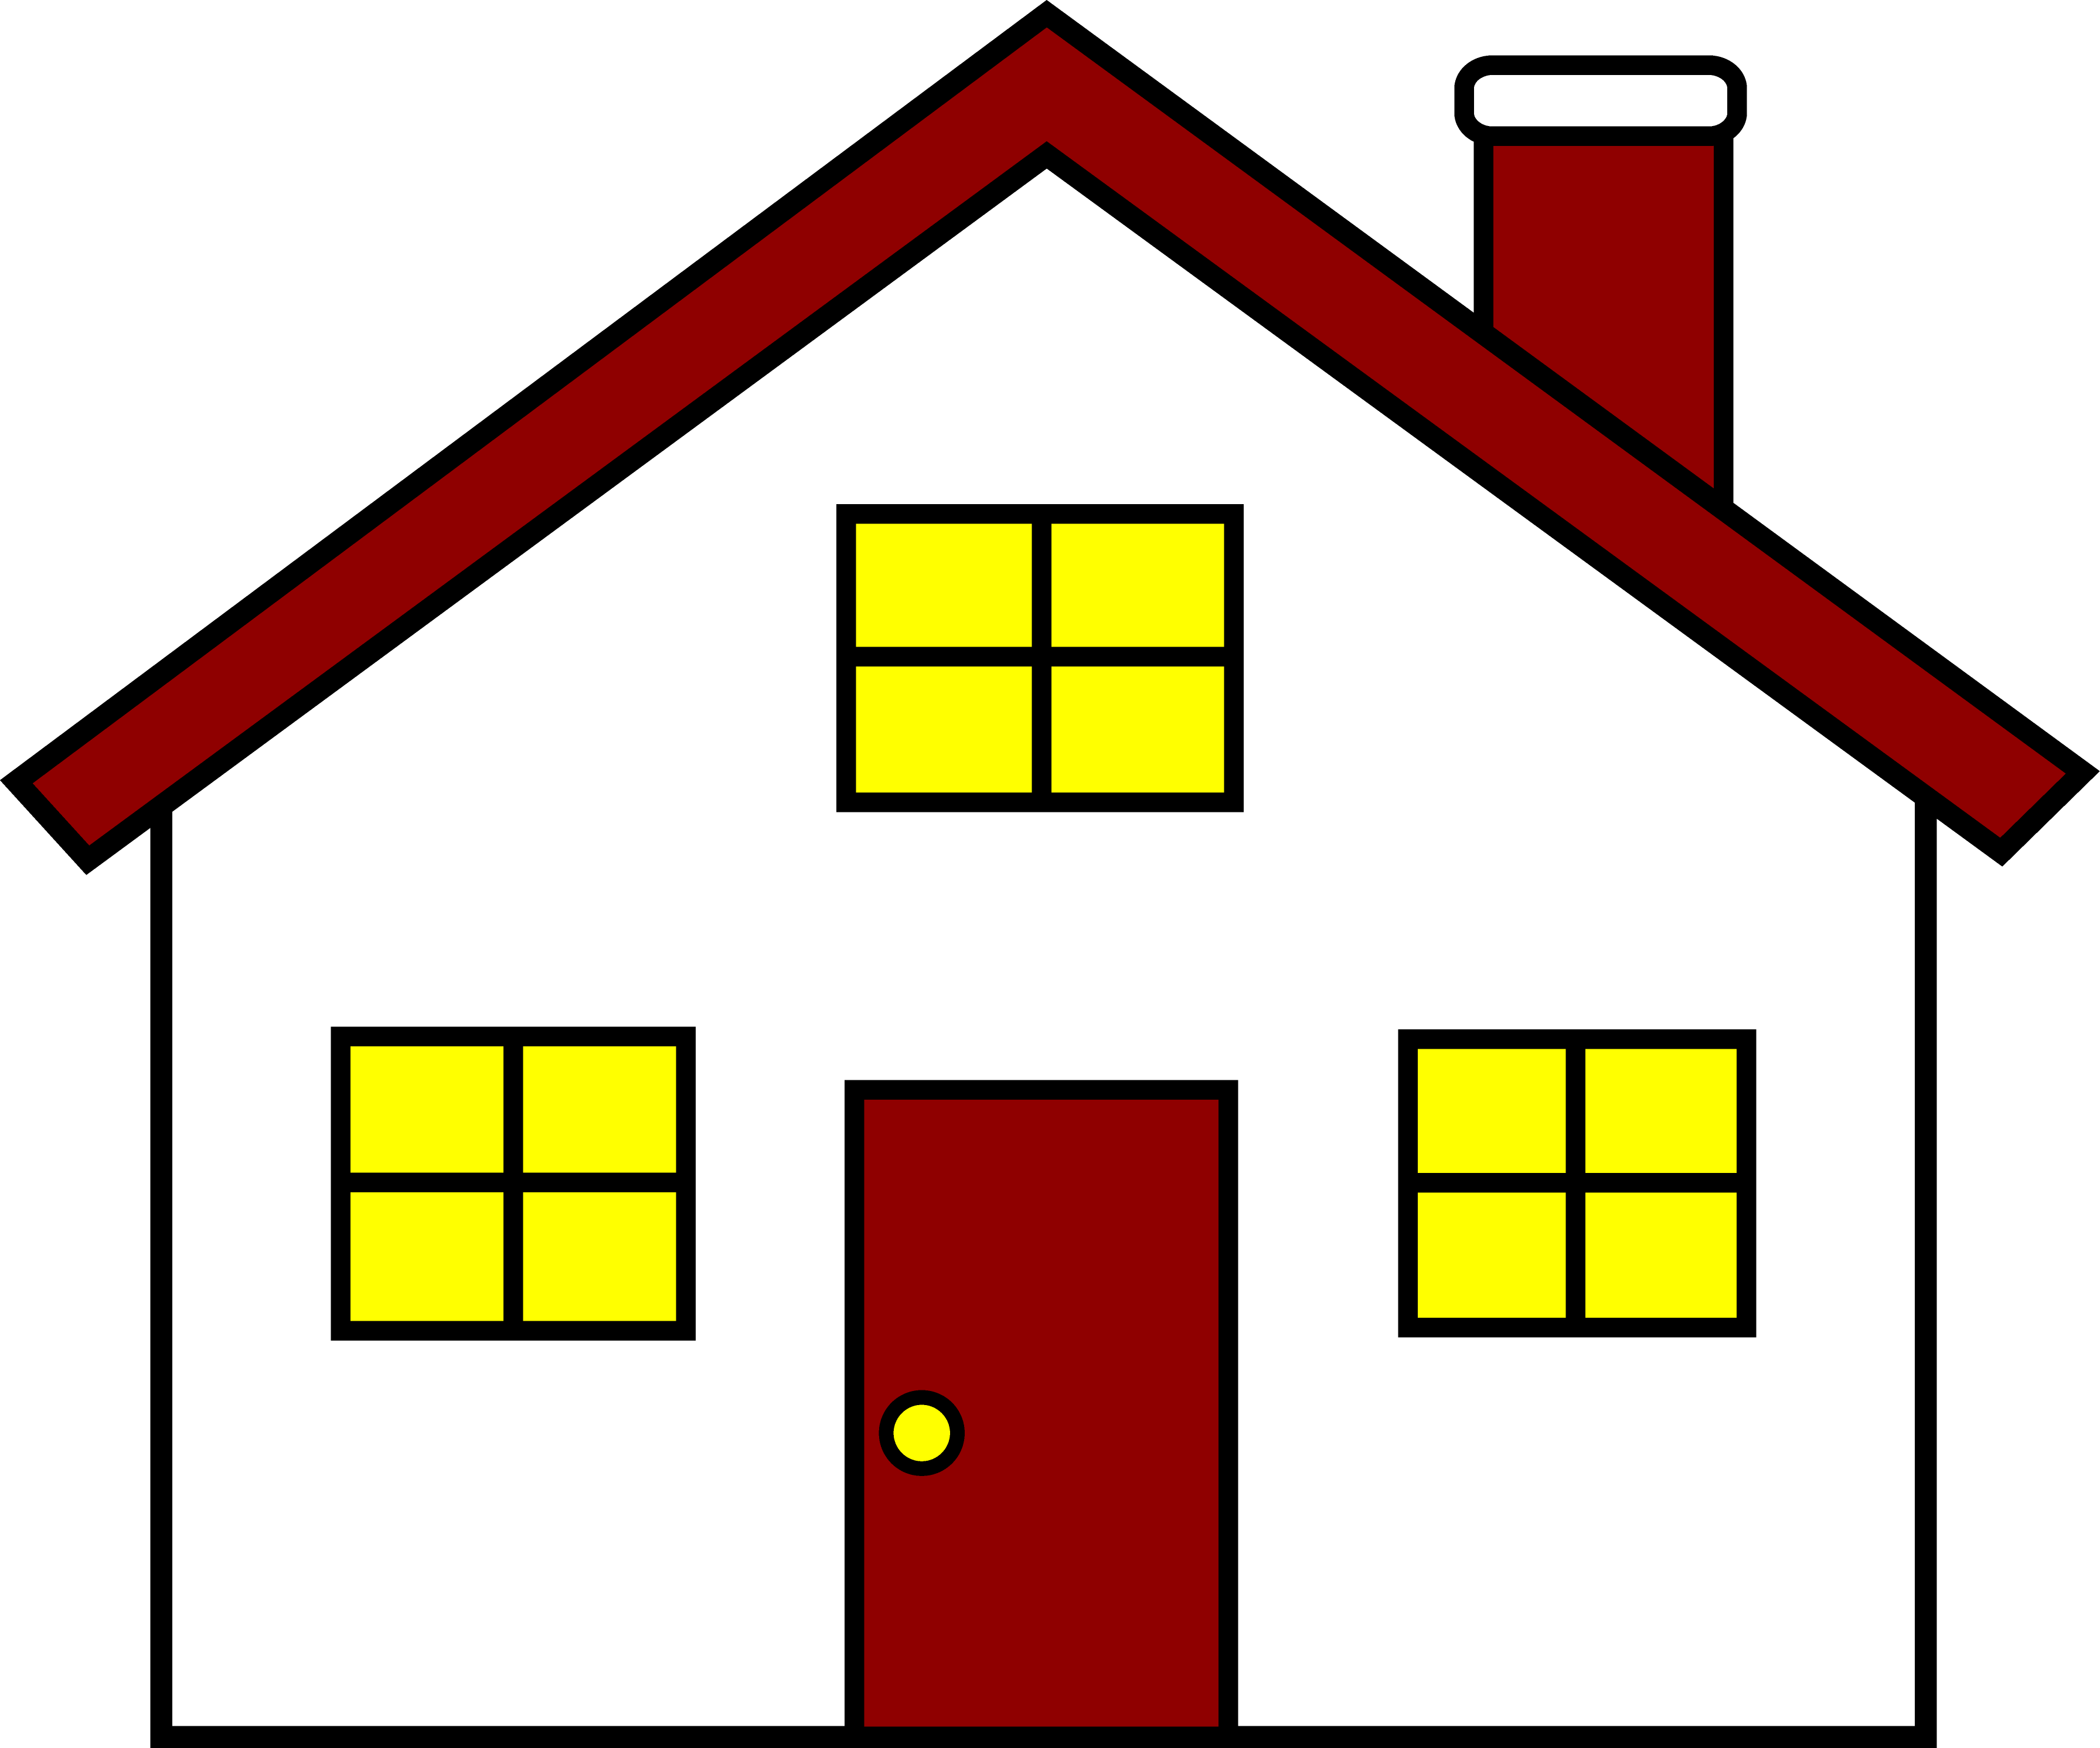 House clipart #14, Download drawings